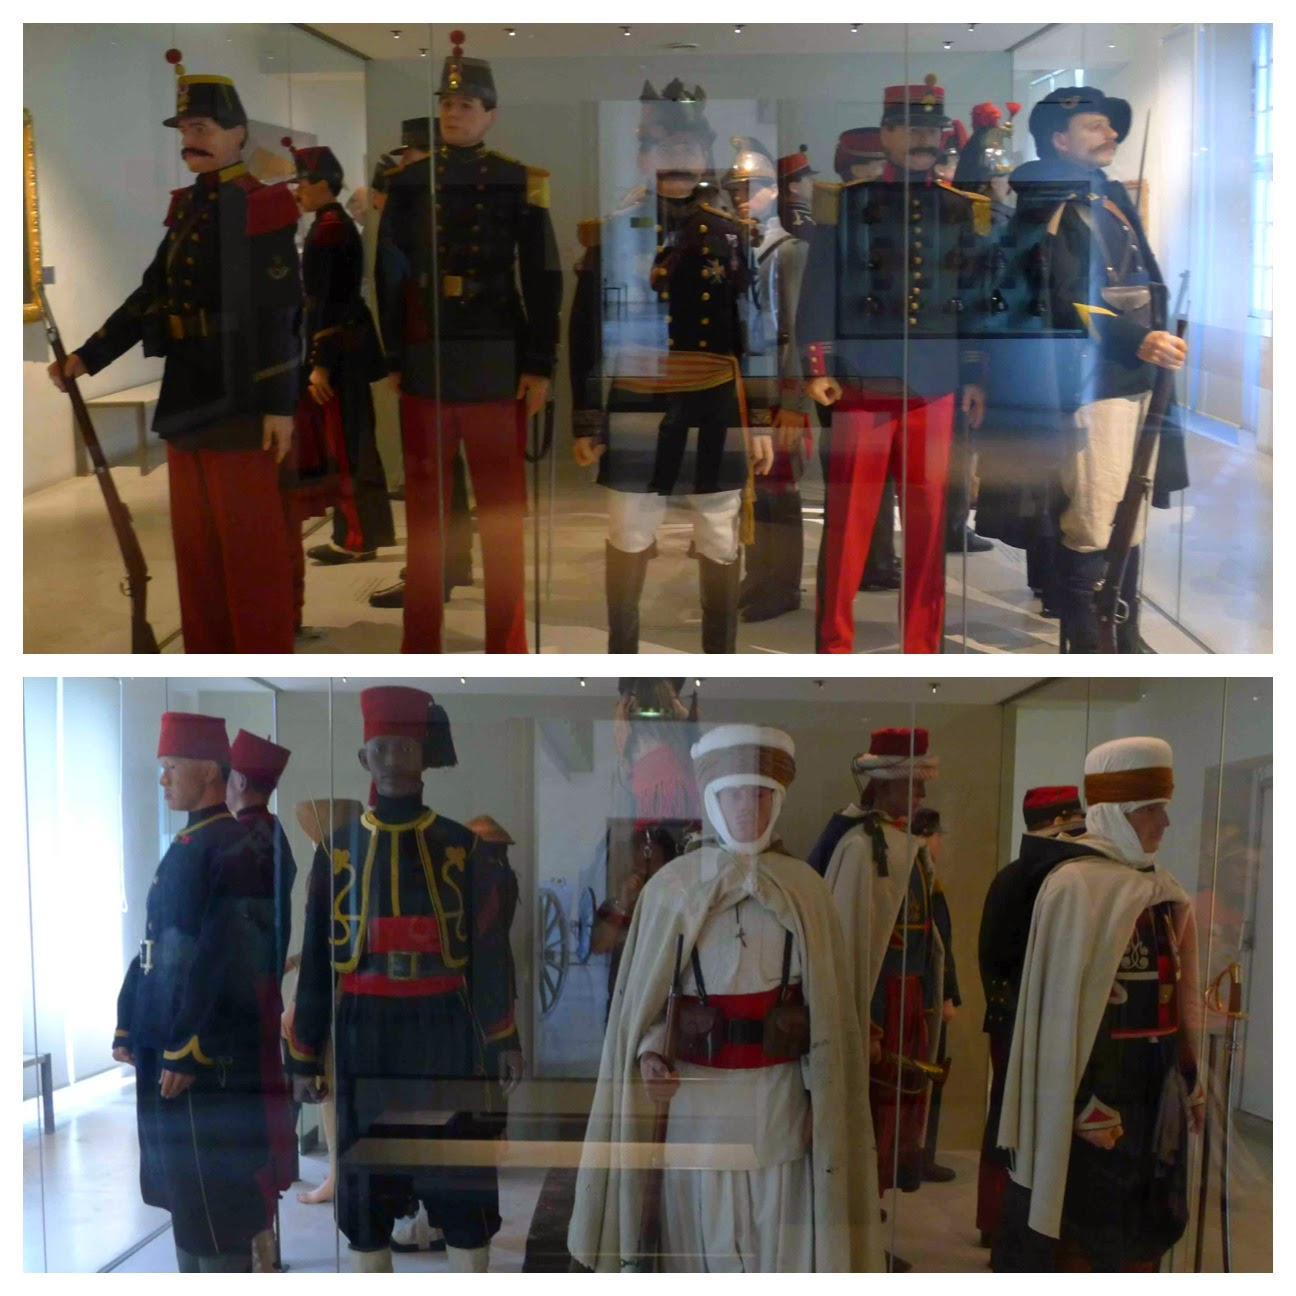 Prussian and Algerian Uniforms